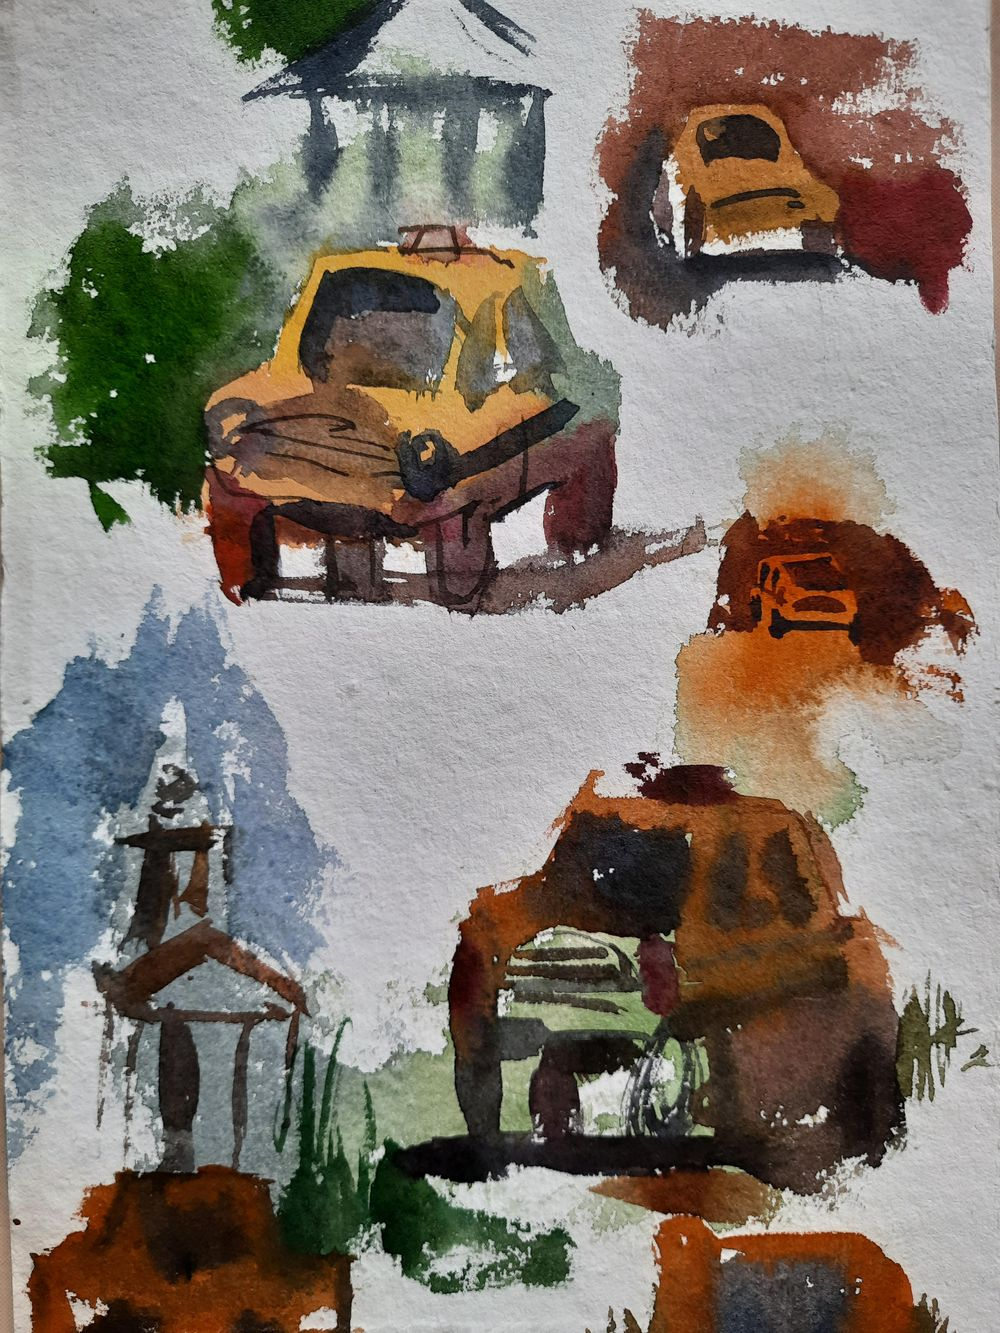 Watercolor workout - image 19 - student project